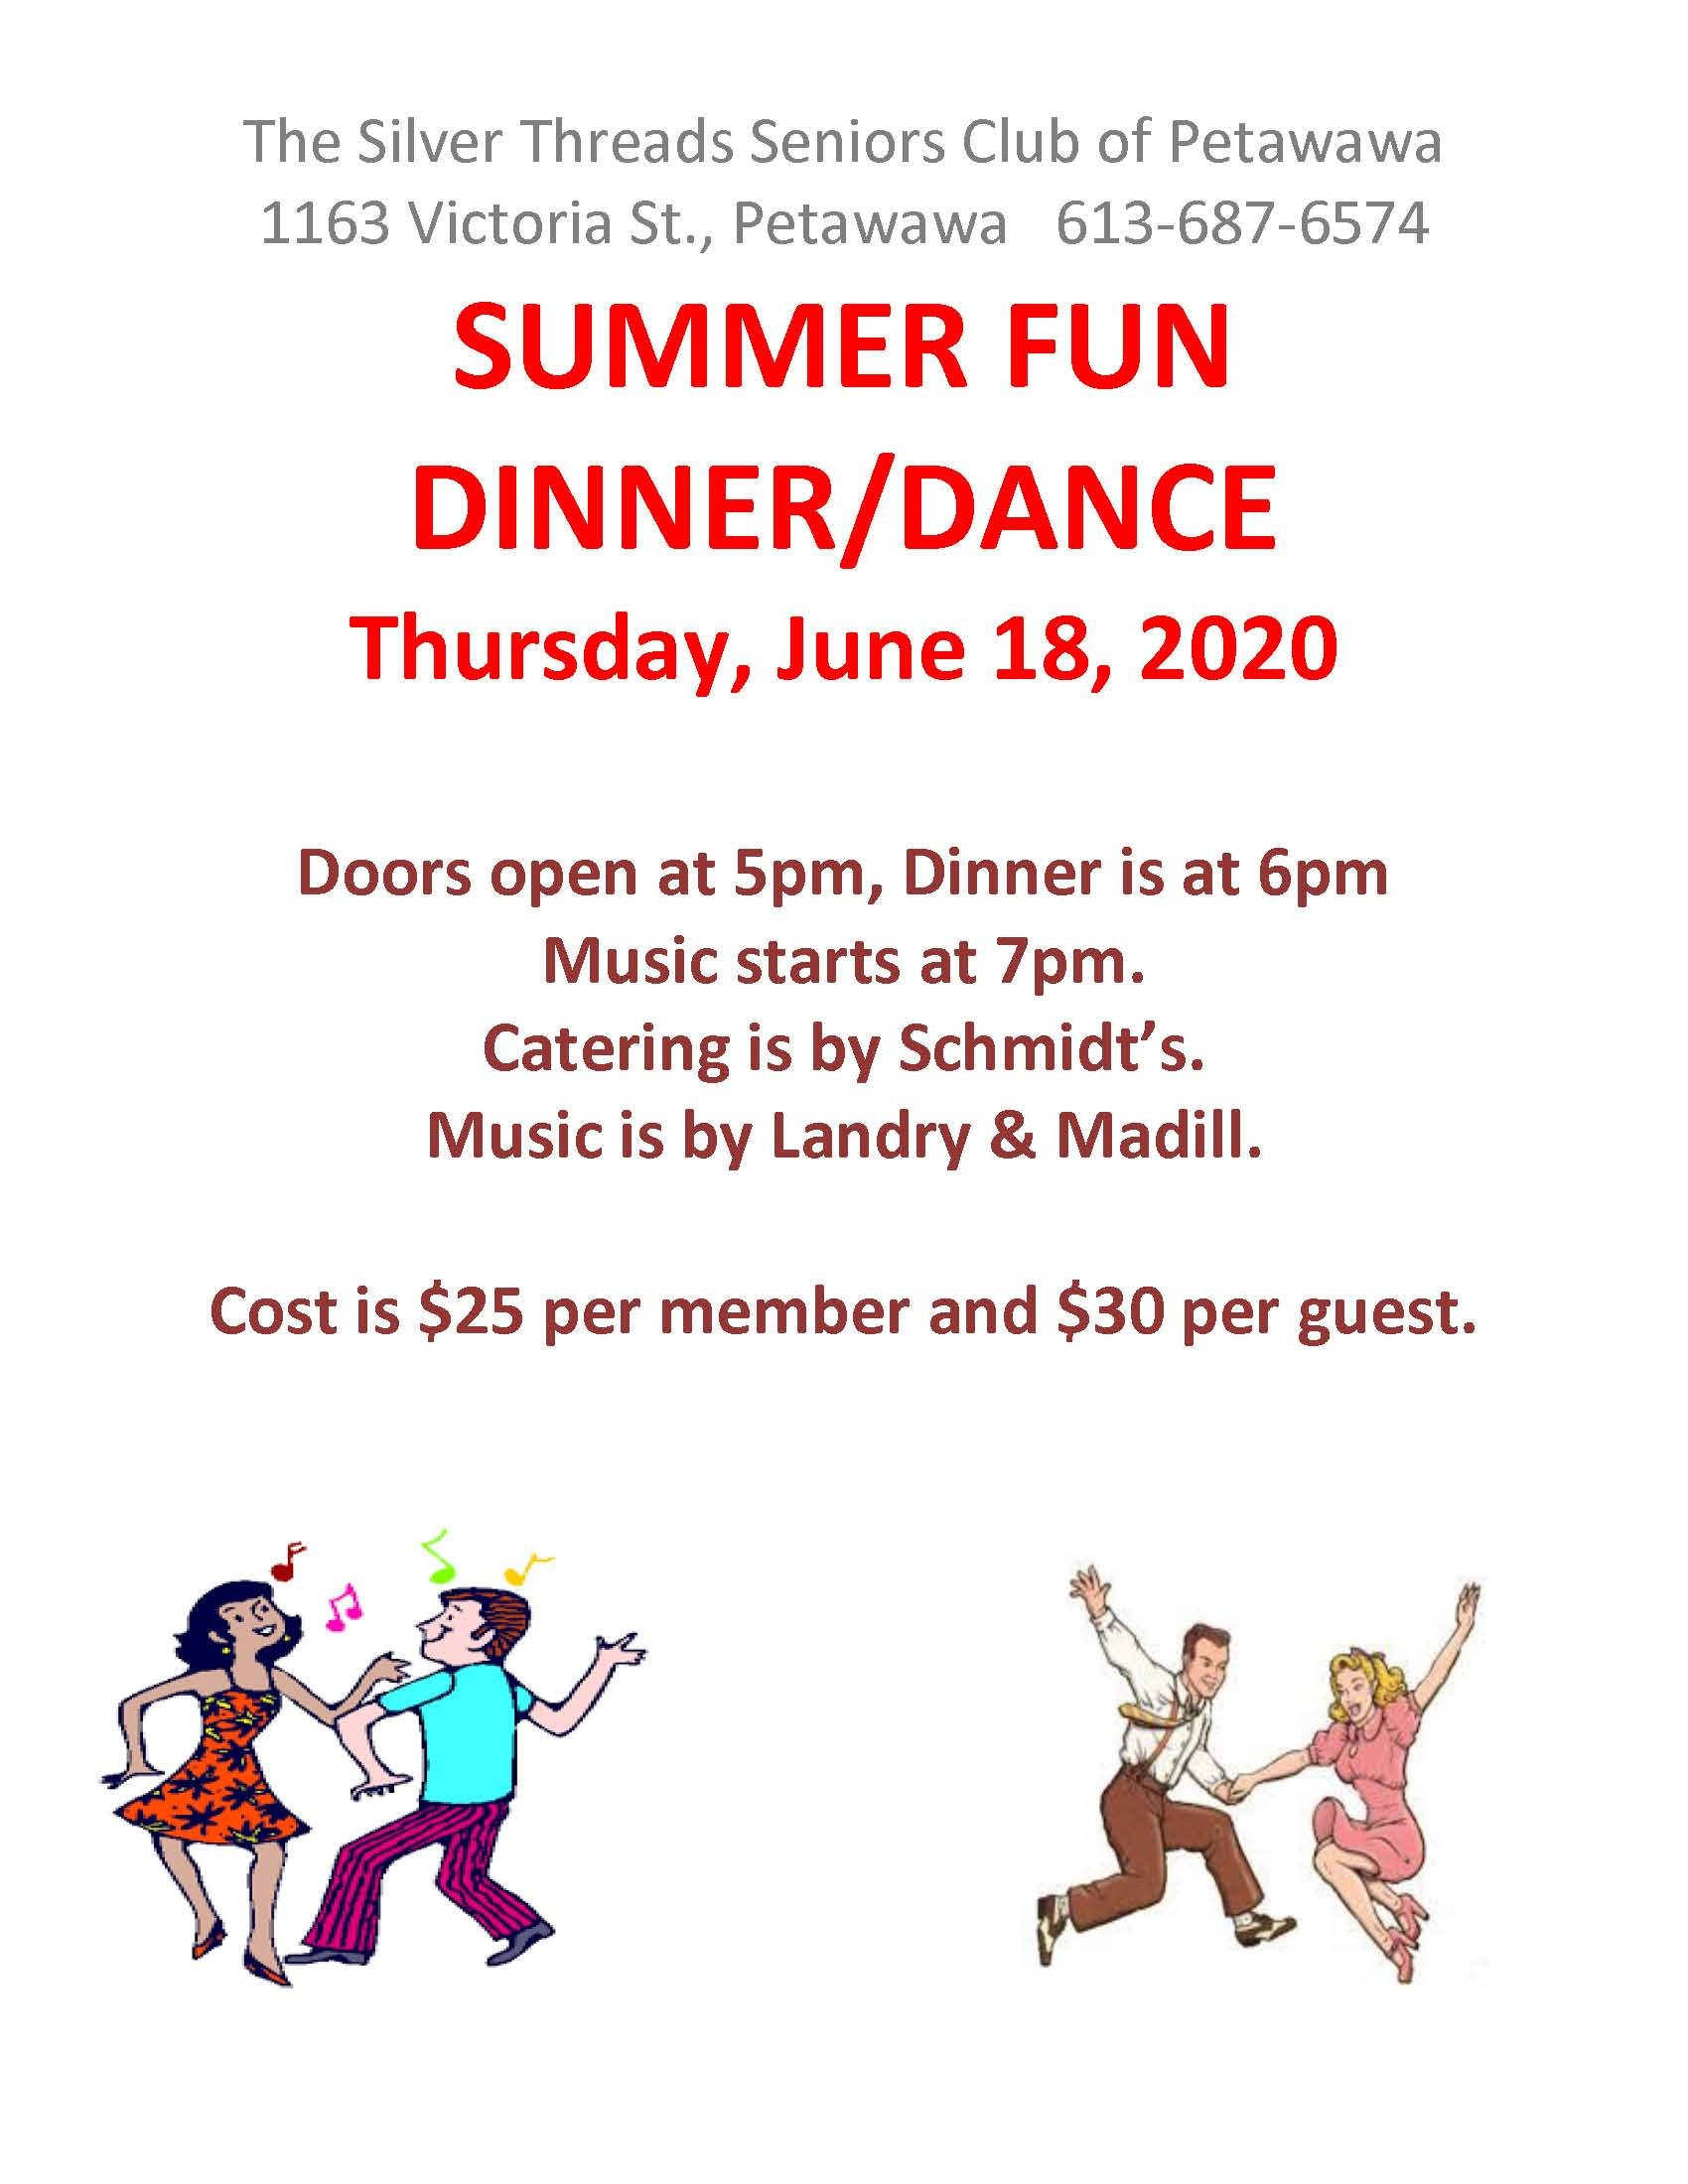 Image of dinner and dance poster